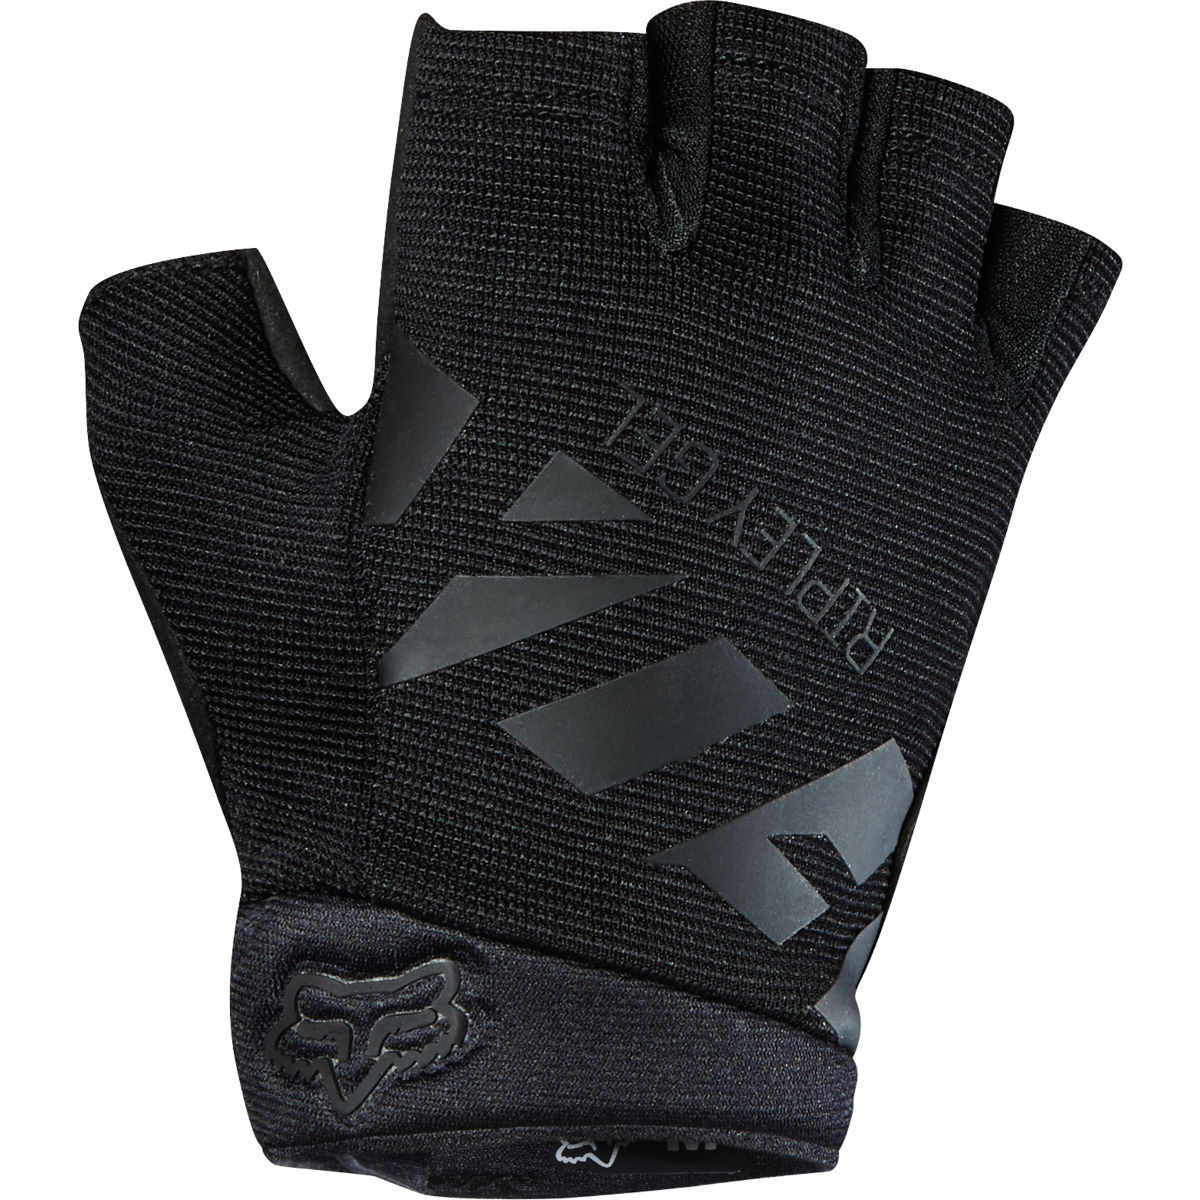 Fox Racing Women's Ripley Gel Short Gloves - S Black/Black